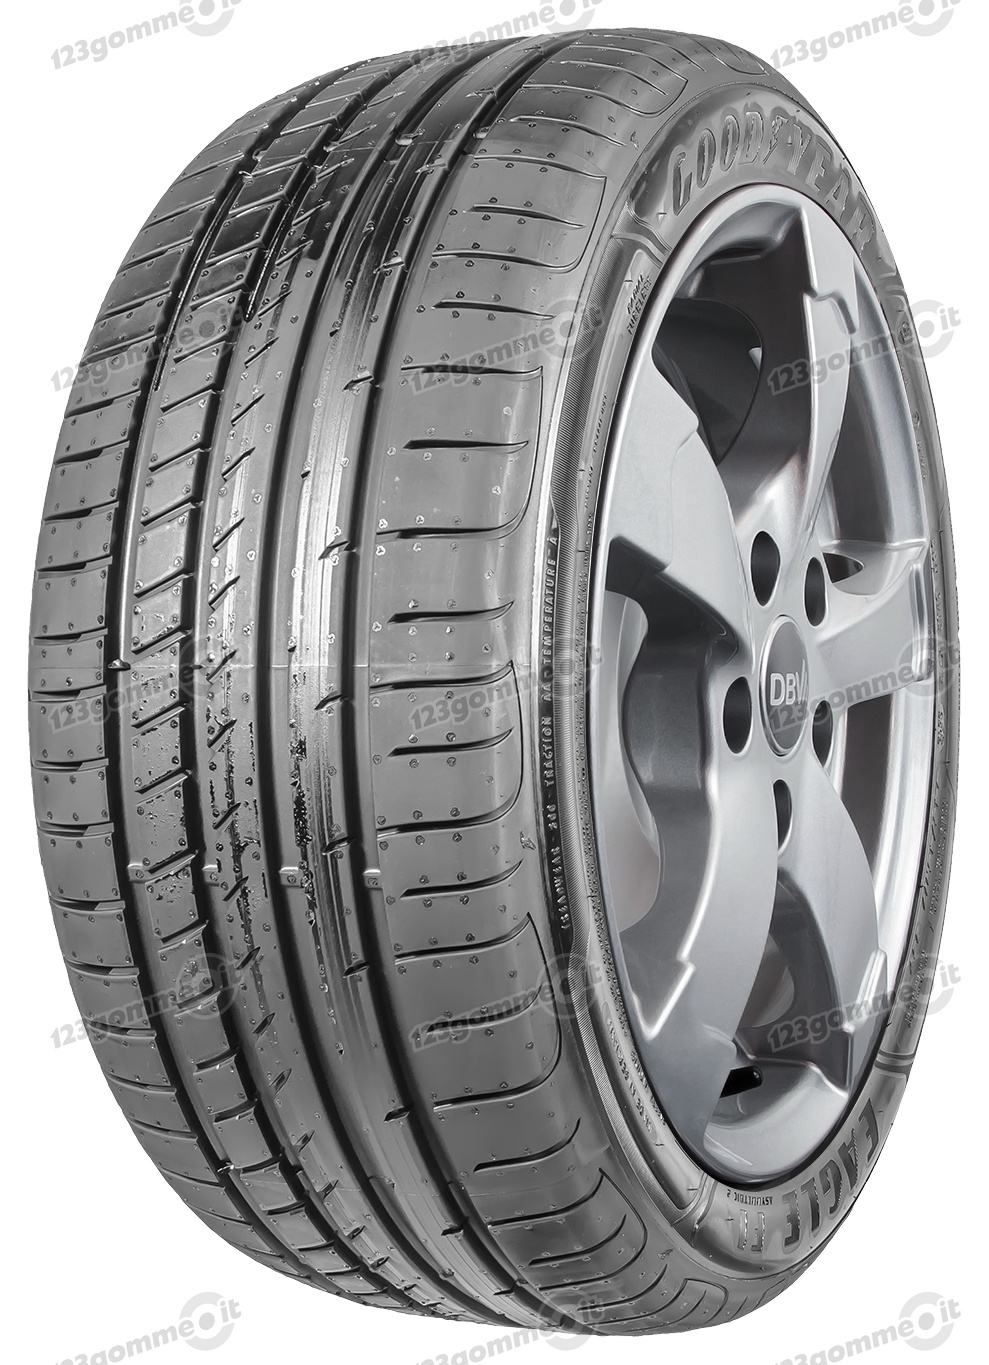 265/40 R18 101Y Eagle F1 Asymmetric 2 XL FP  Eagle F1 Asymmetric 2 XL FP